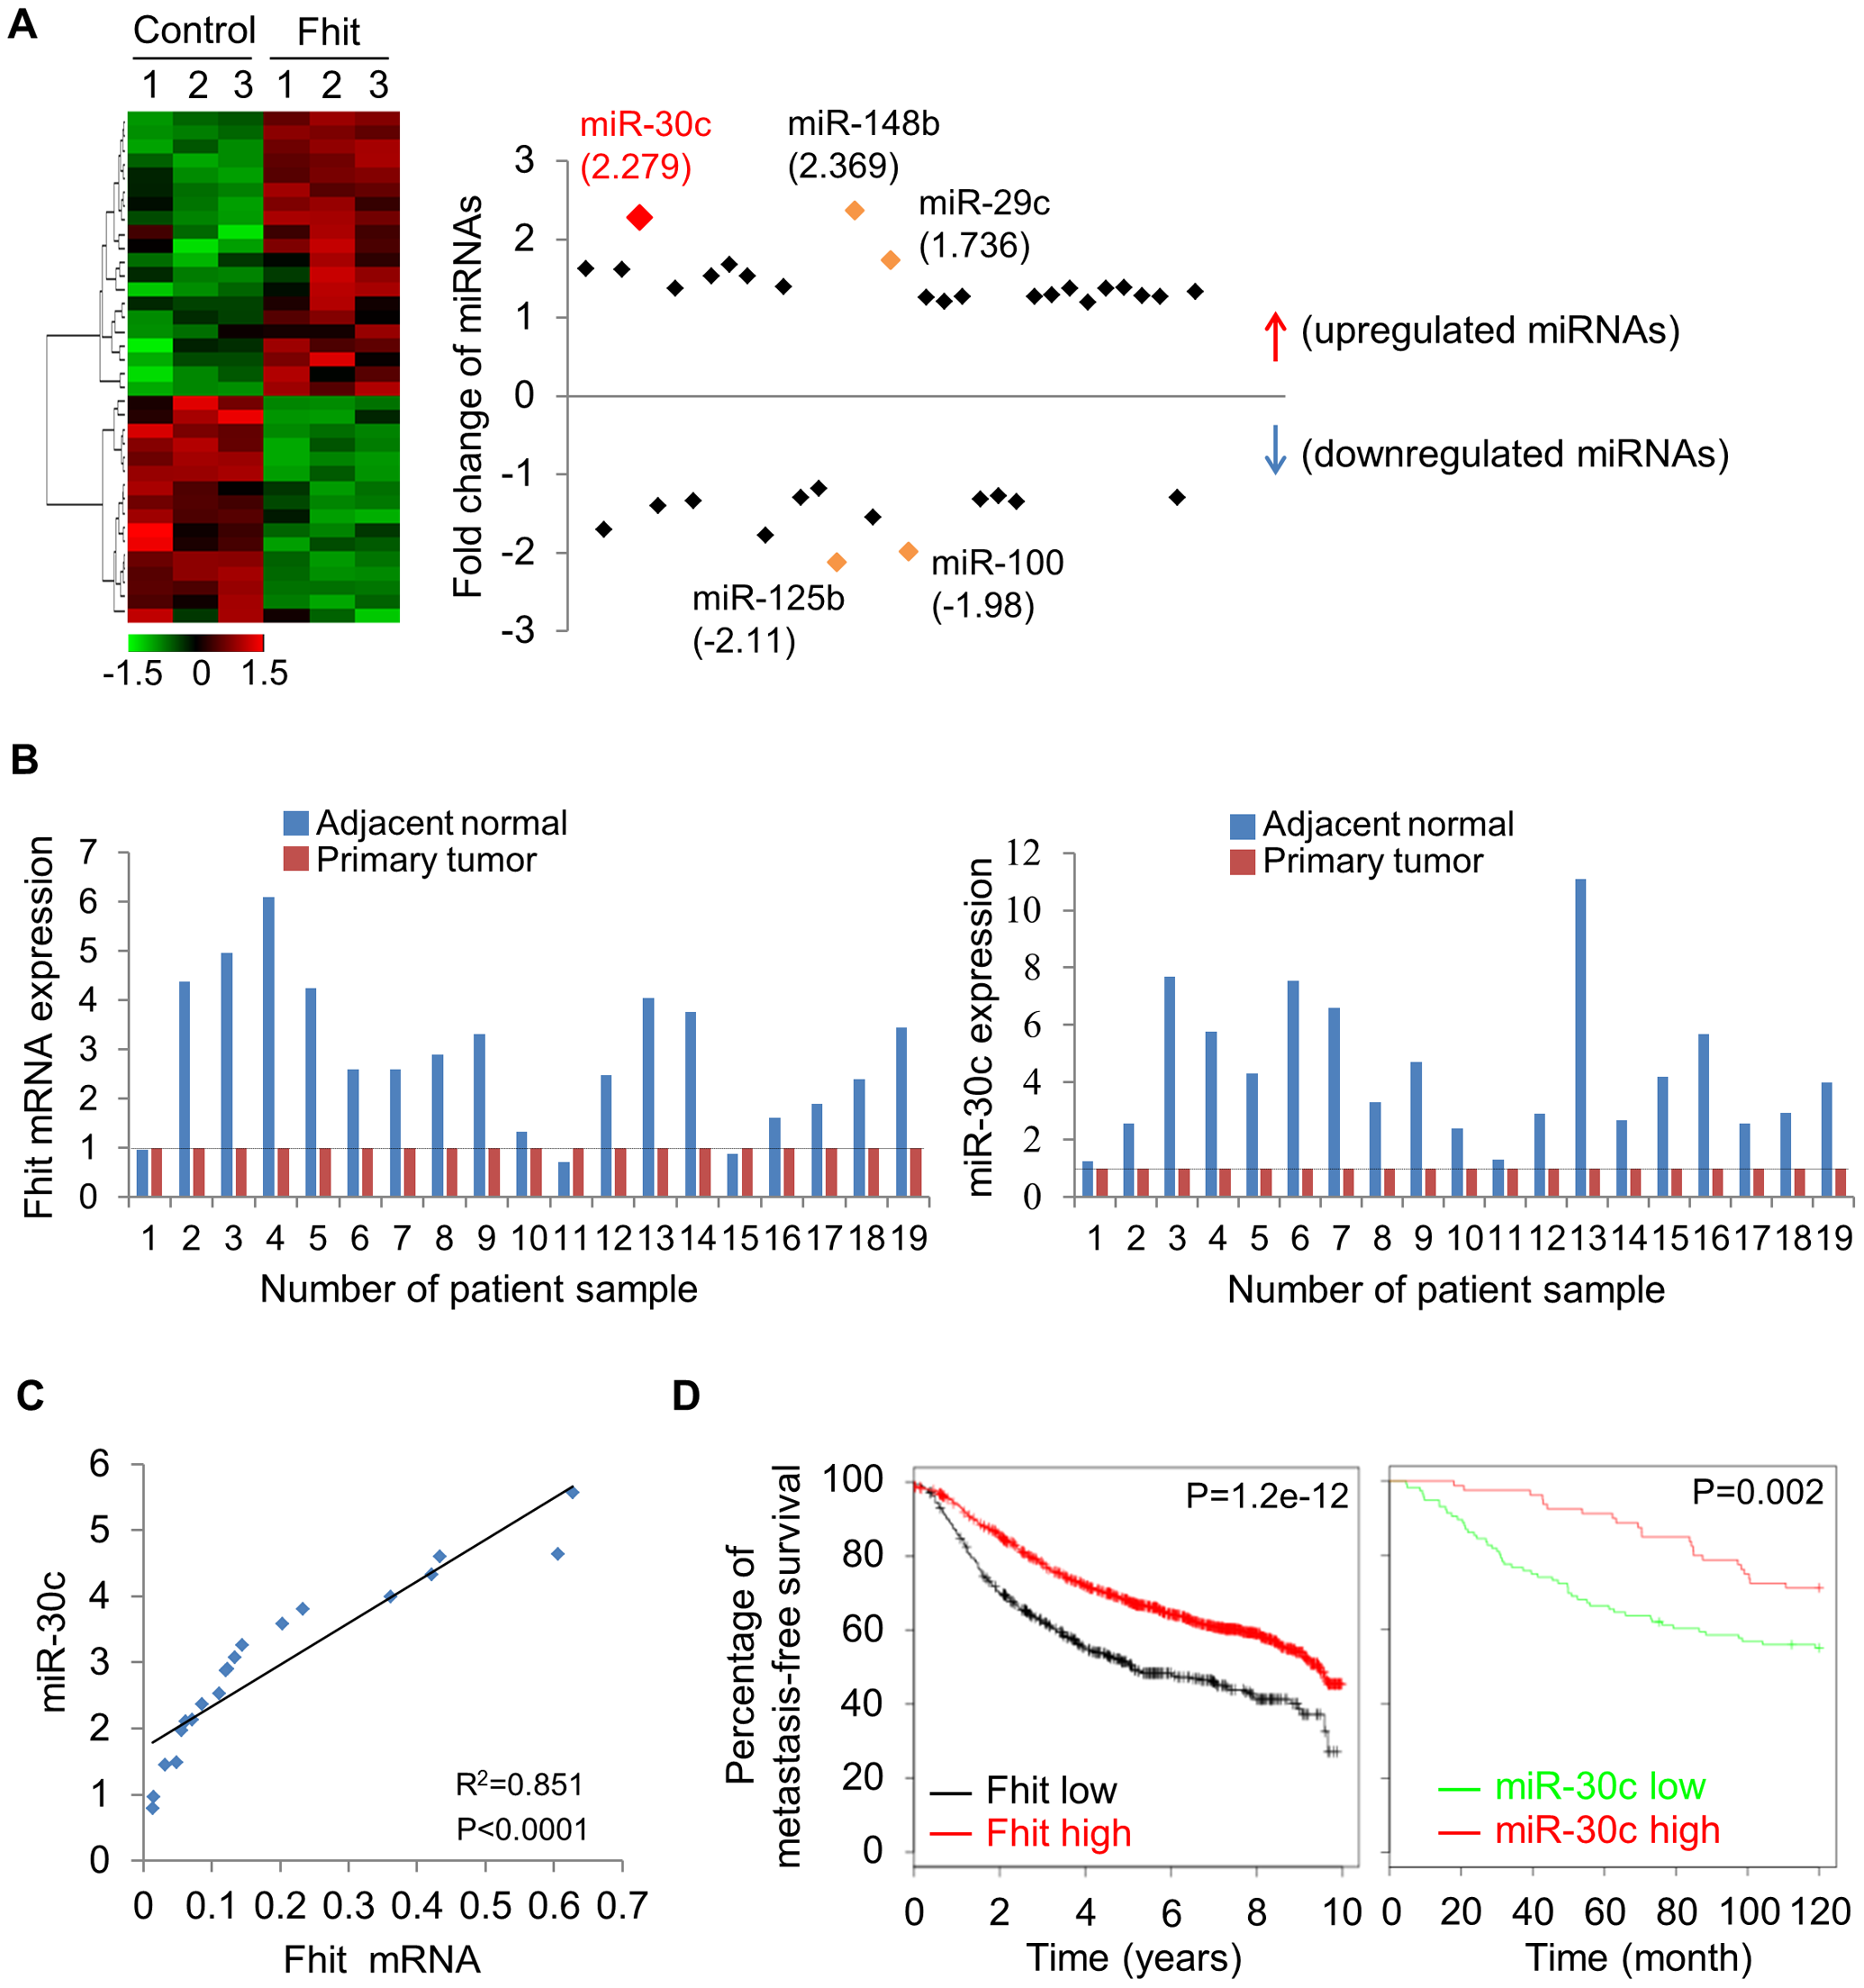 FHIT expression leads to activation of miR-30c in lung cancer.